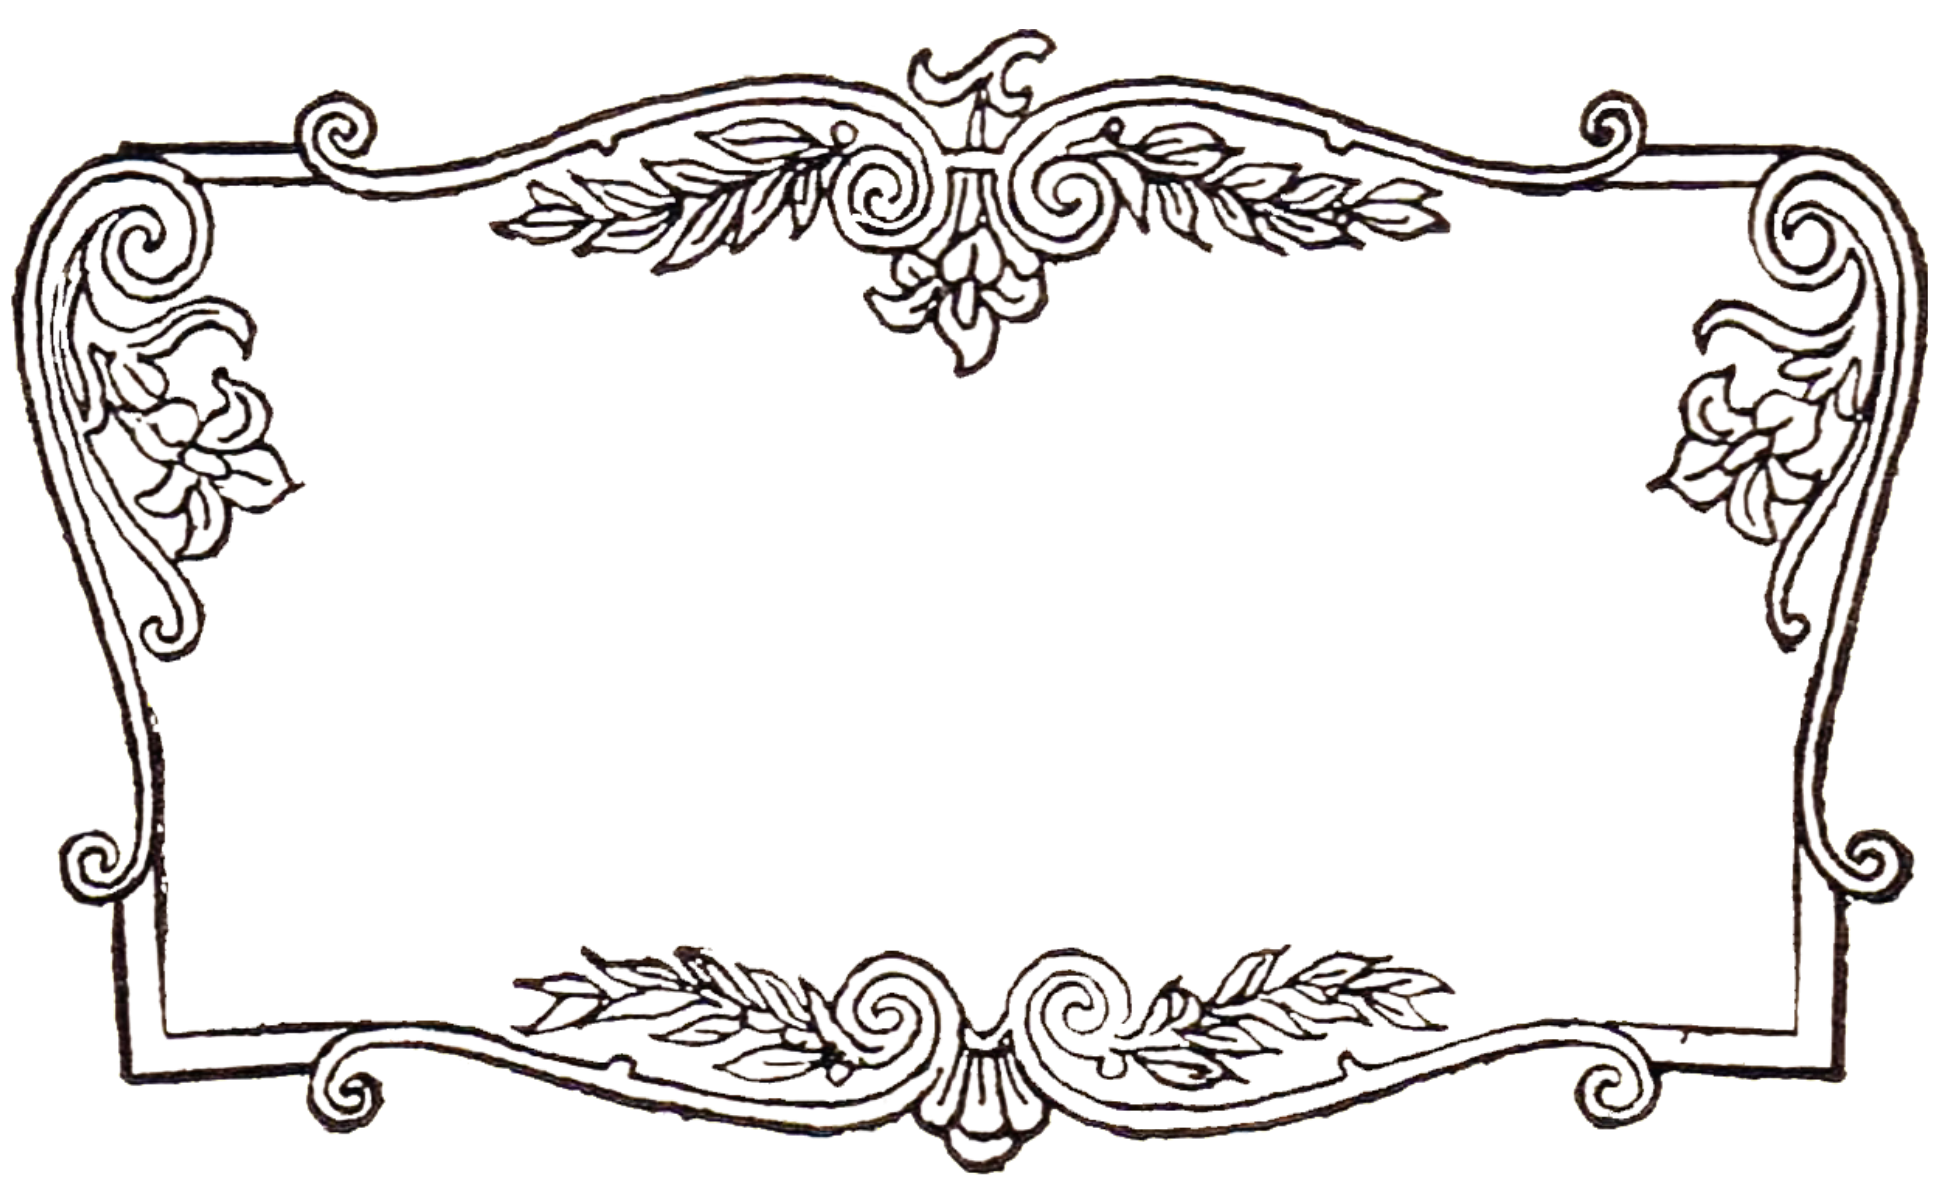 Fancy frames png. Frame background image arts